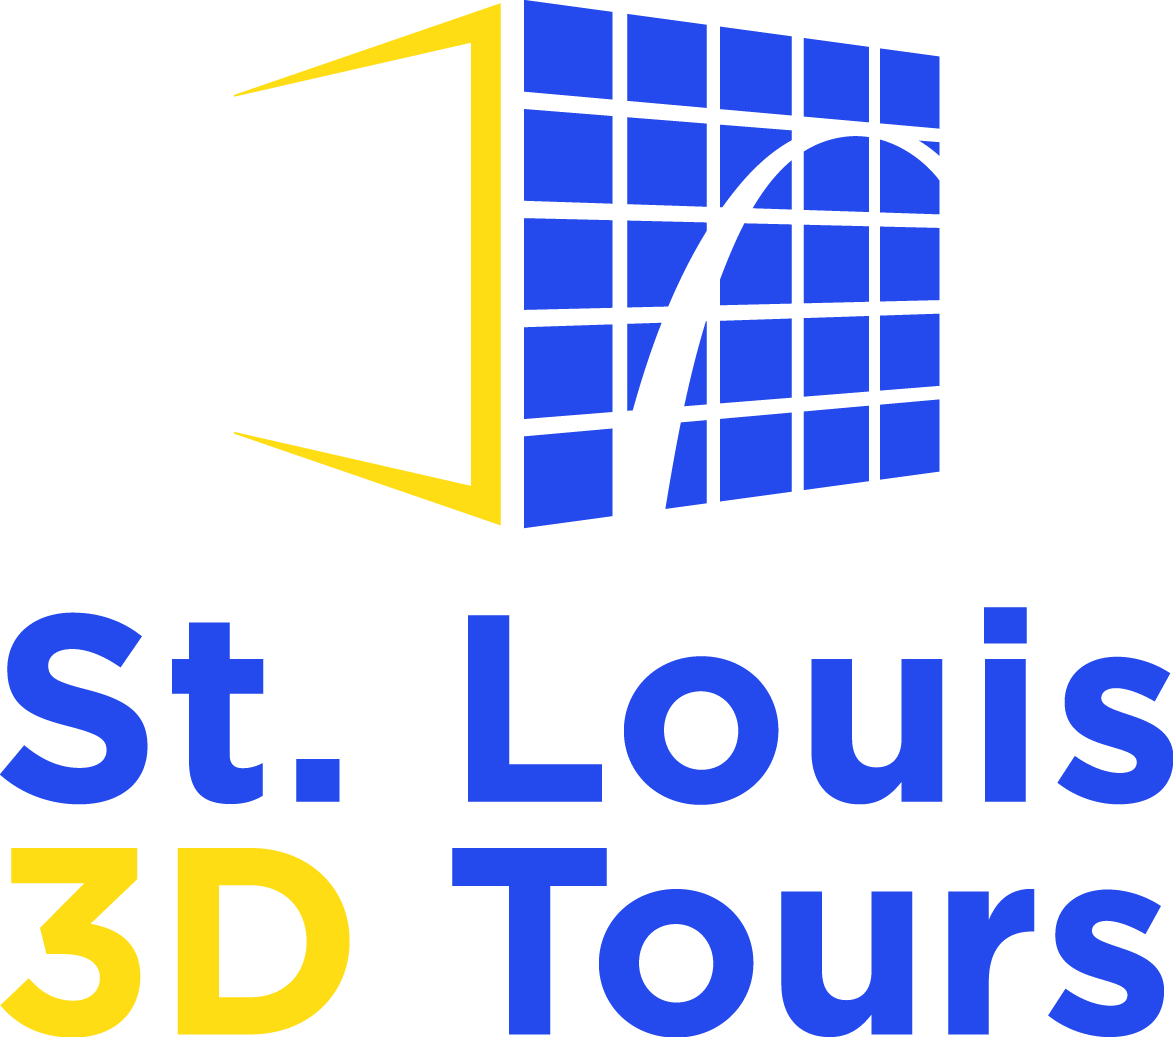 St. Louis 3D Tours